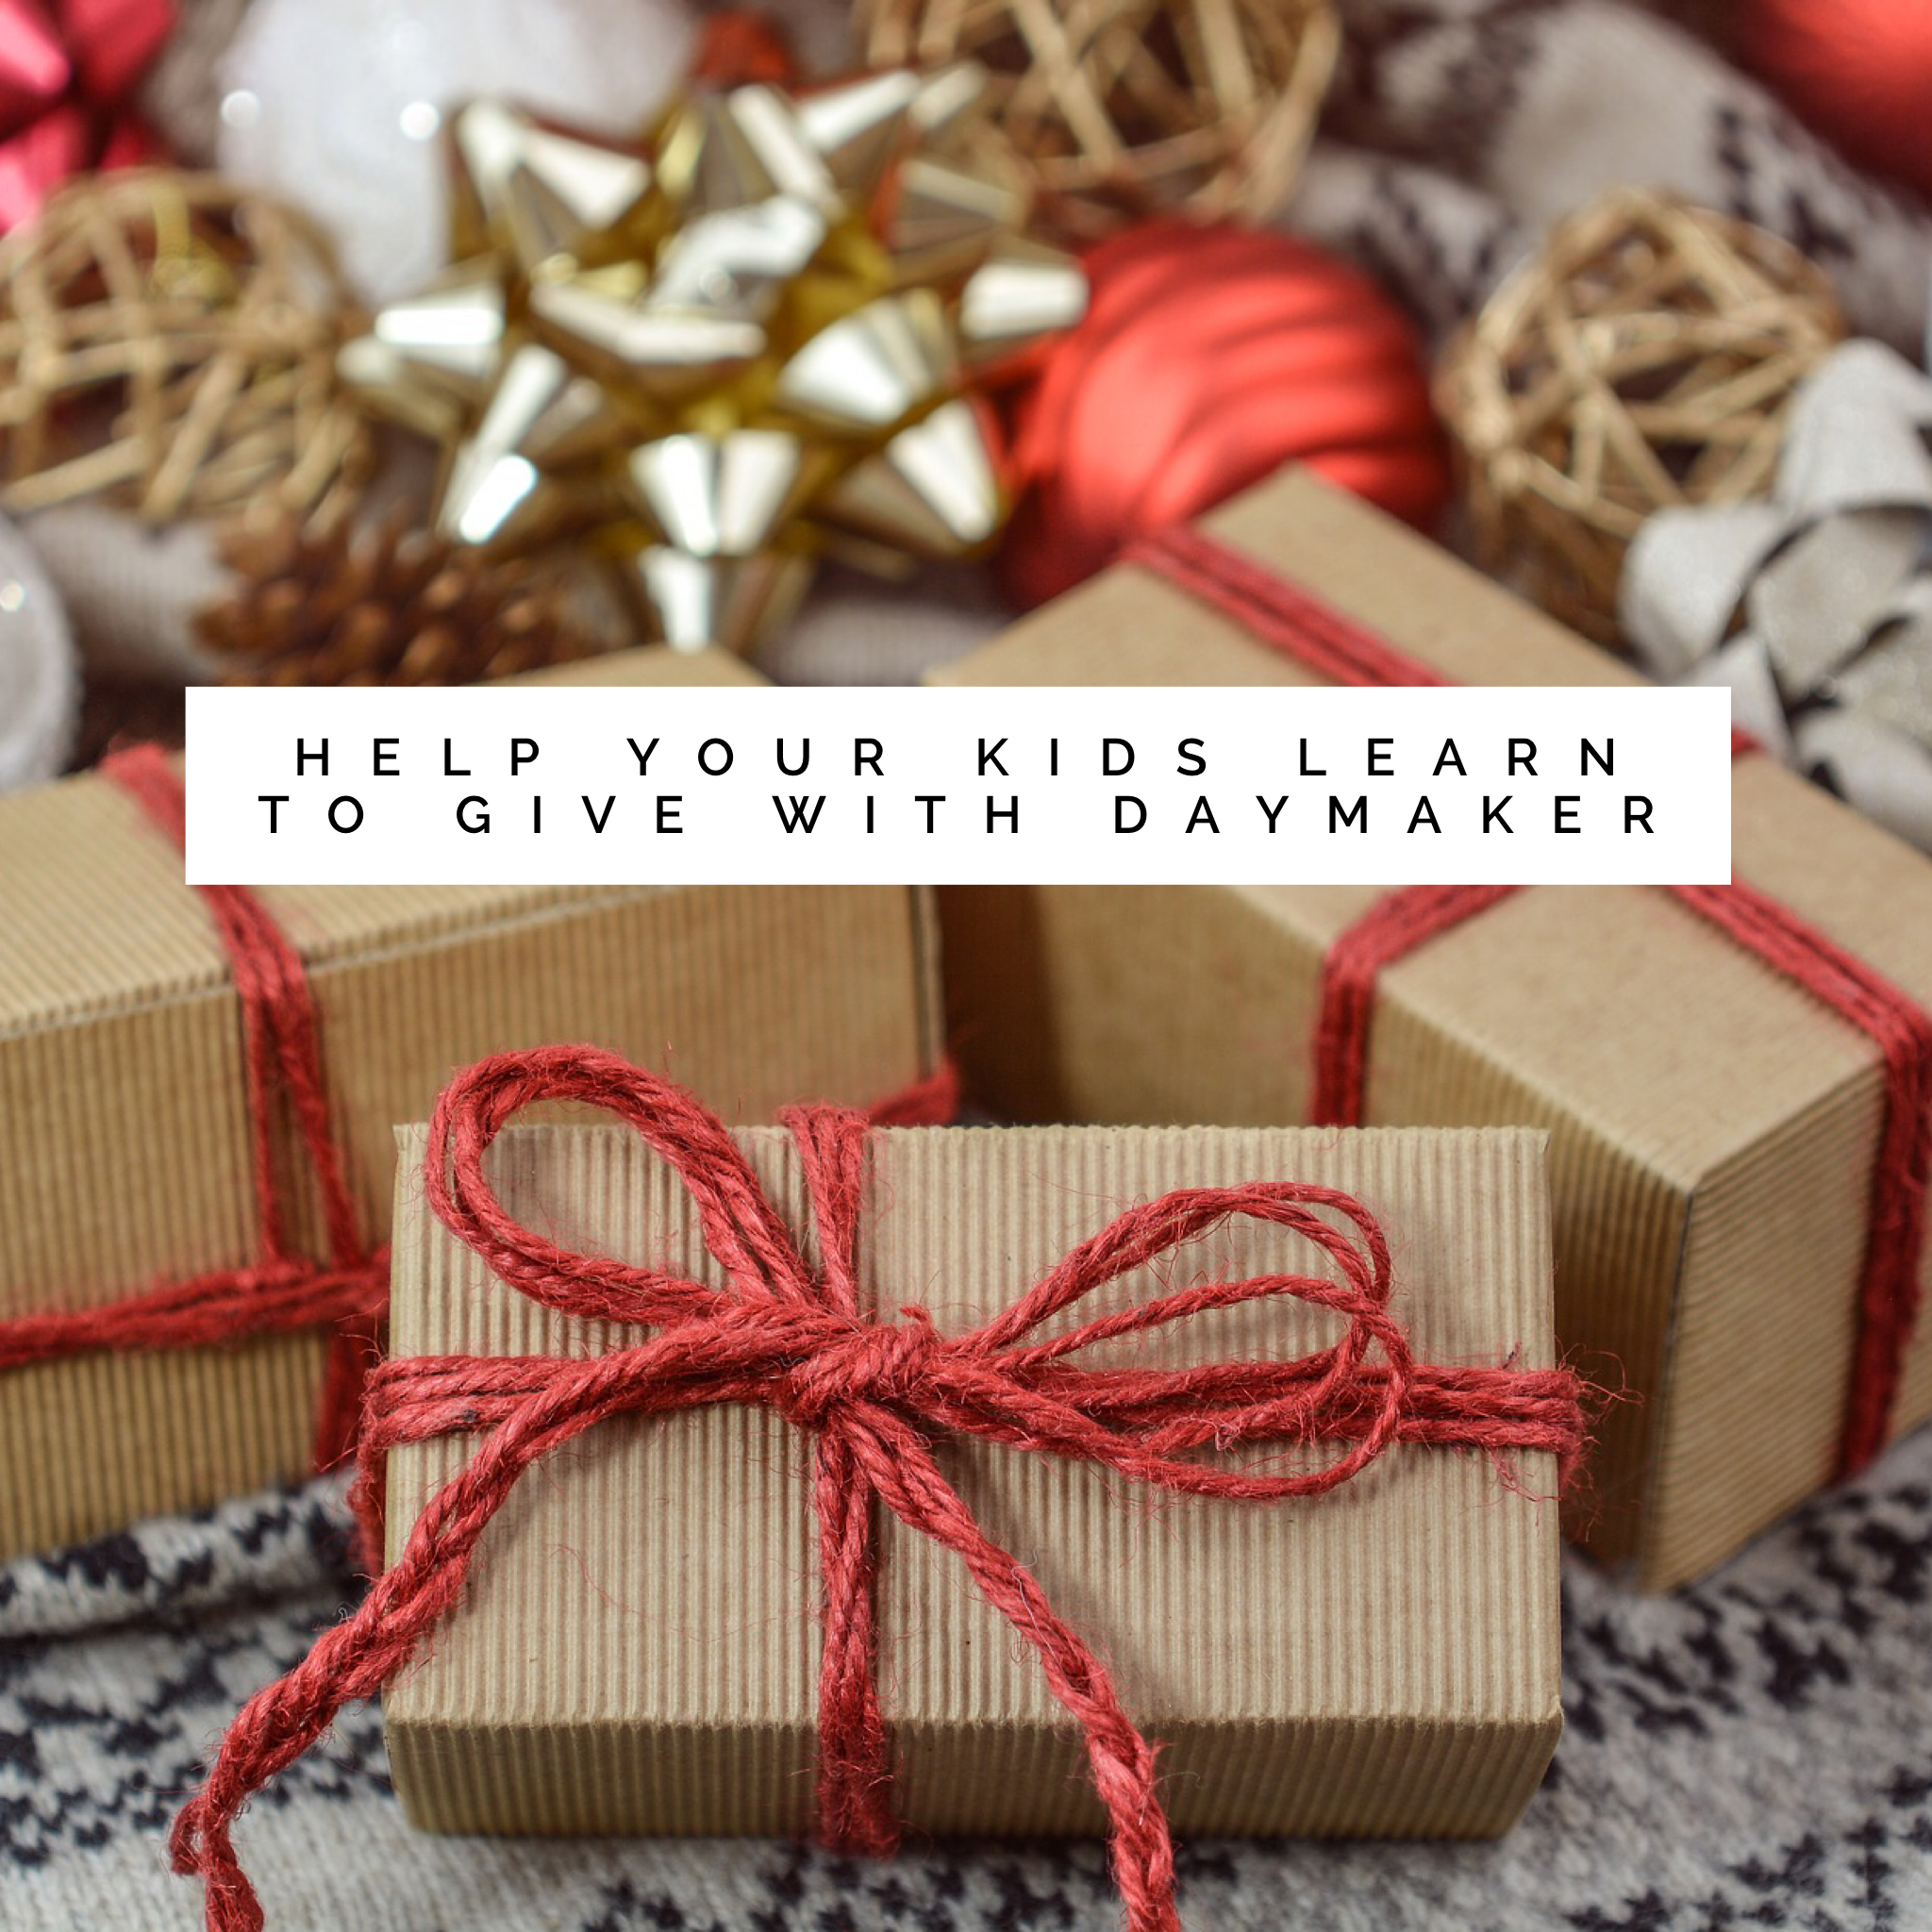 Your Kids Can Buy A Gift For A Kid In Foster Care With Daymaker